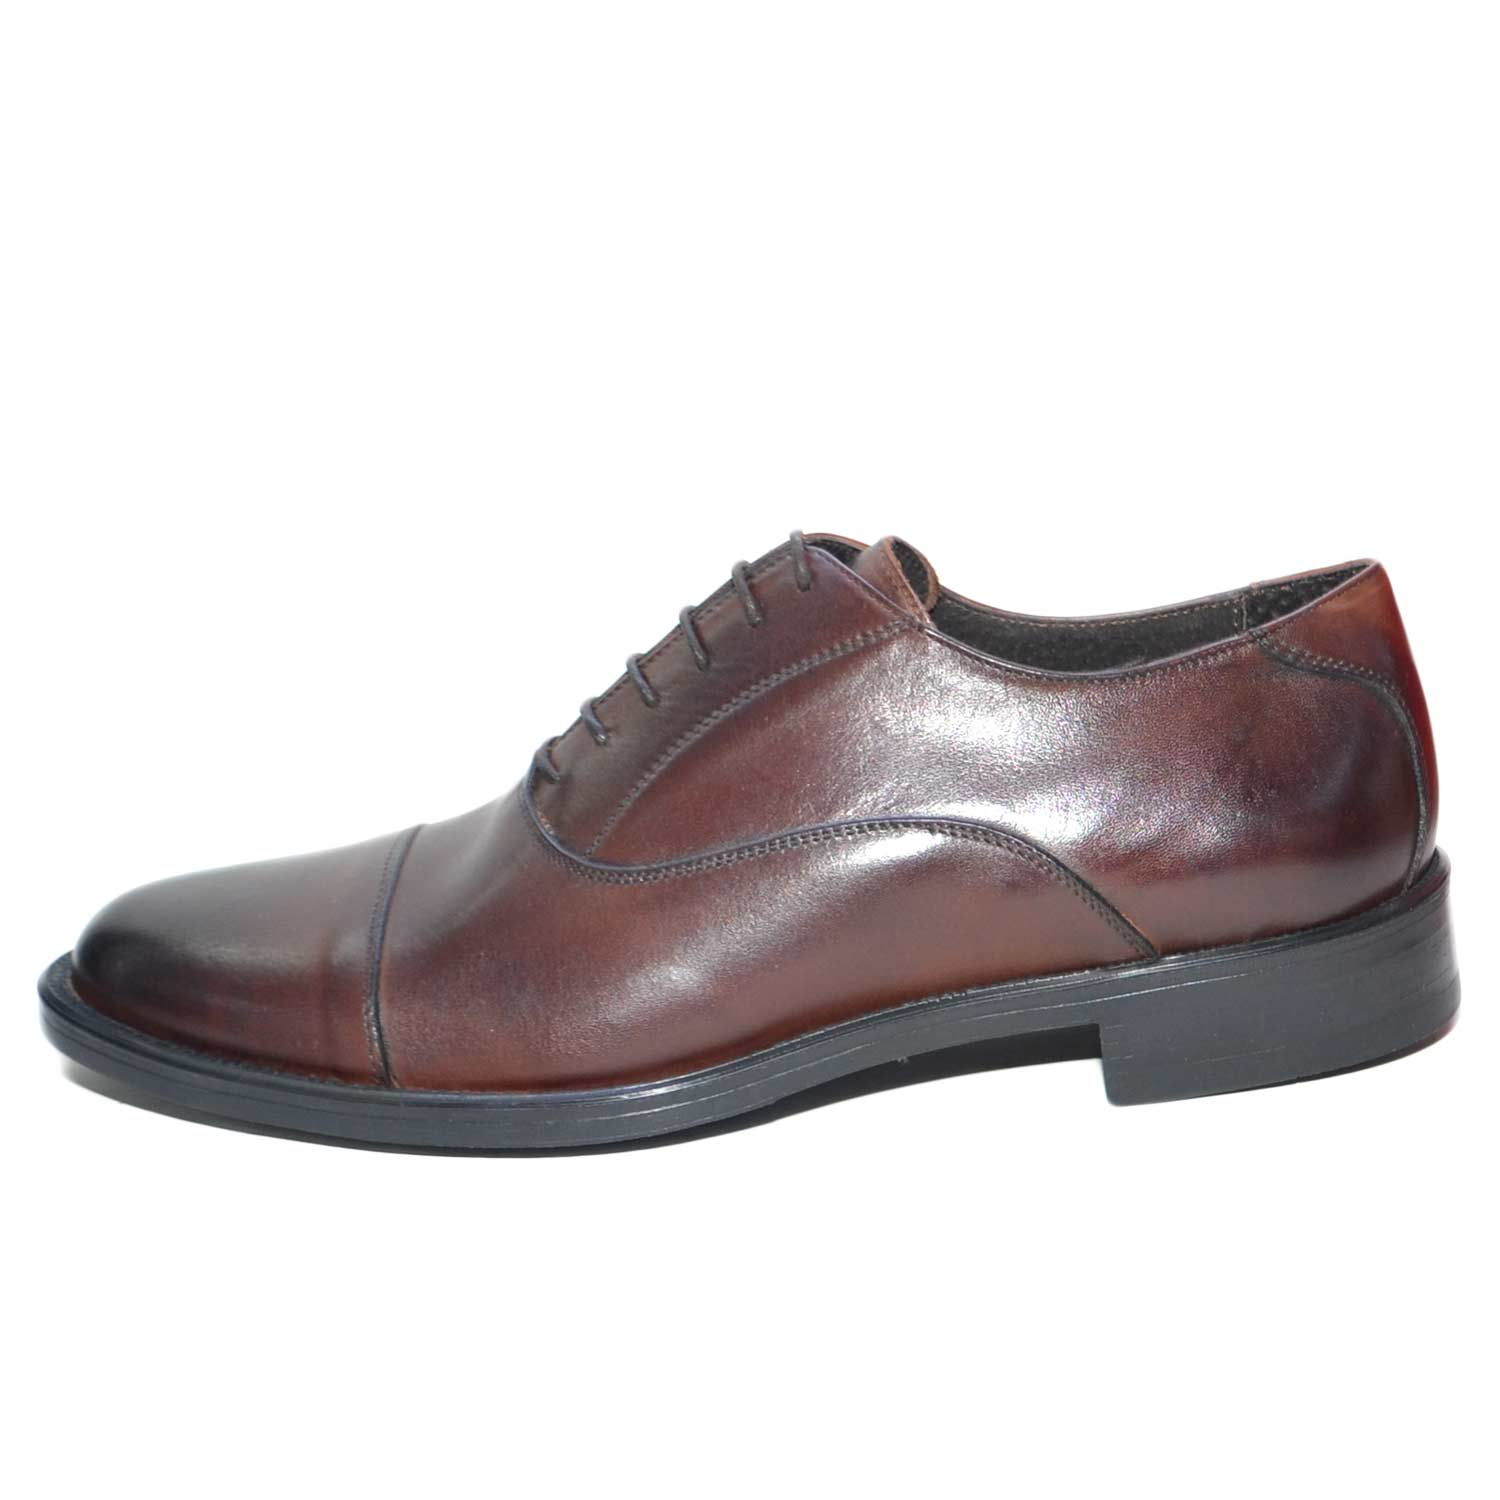 competitive price 3eabe e68c3 Scarpe uomo francesina stringata marrone vera pelle spazzolata art:b2345  anticato invernale made in italy uomo stringate Made In Italy | MaluShoes